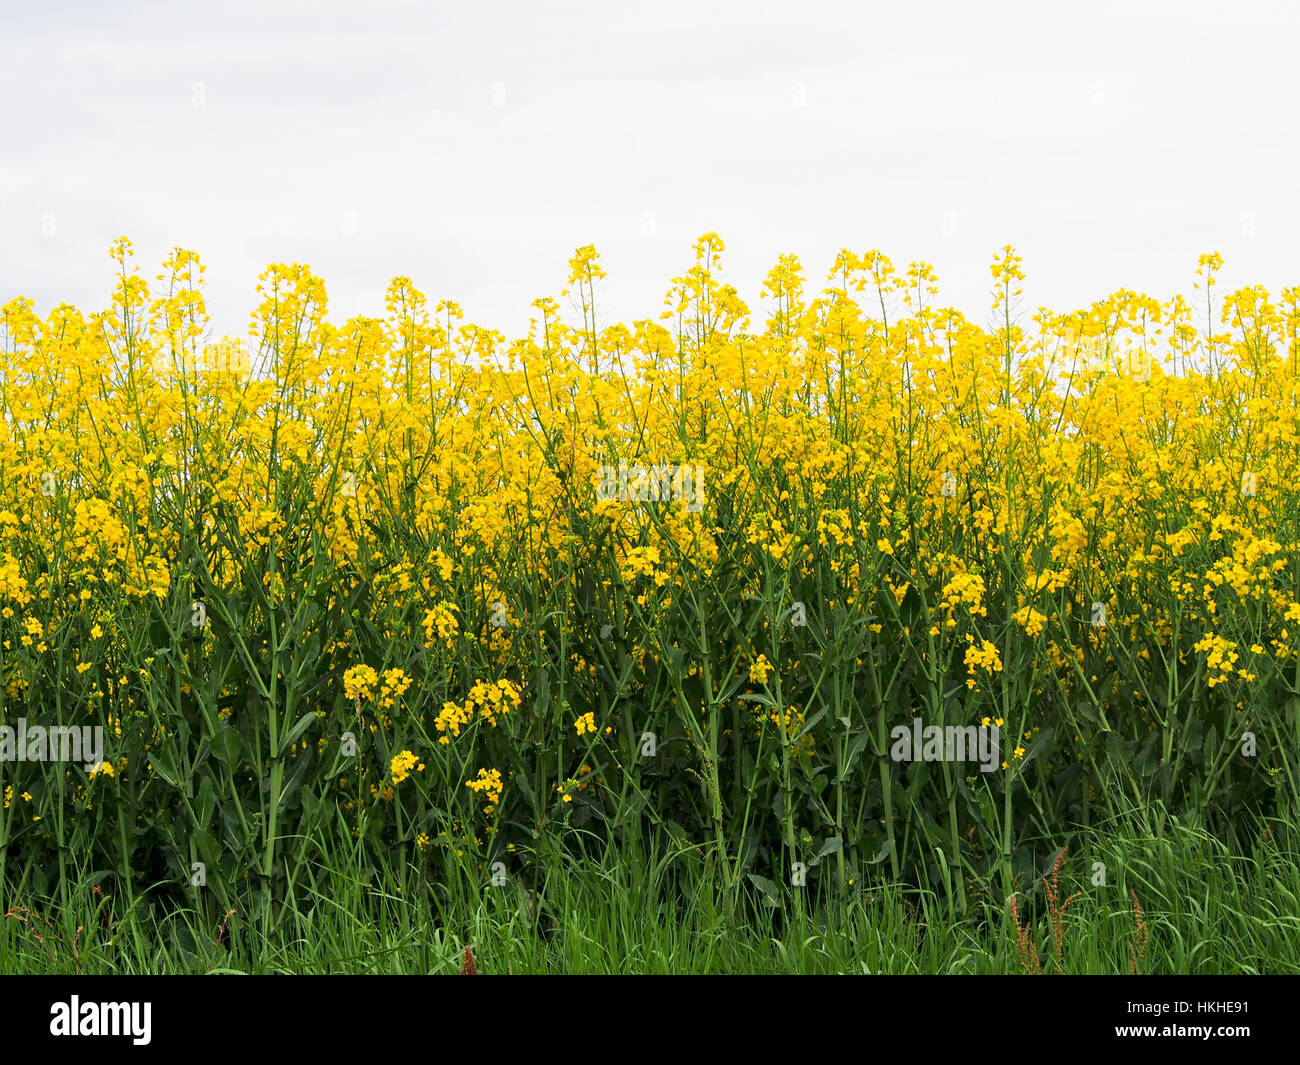 A field of bright yellow flowers in the french countryside the a field of bright yellow flowers in the french countryside the flowers are grown to make cooking oil mightylinksfo